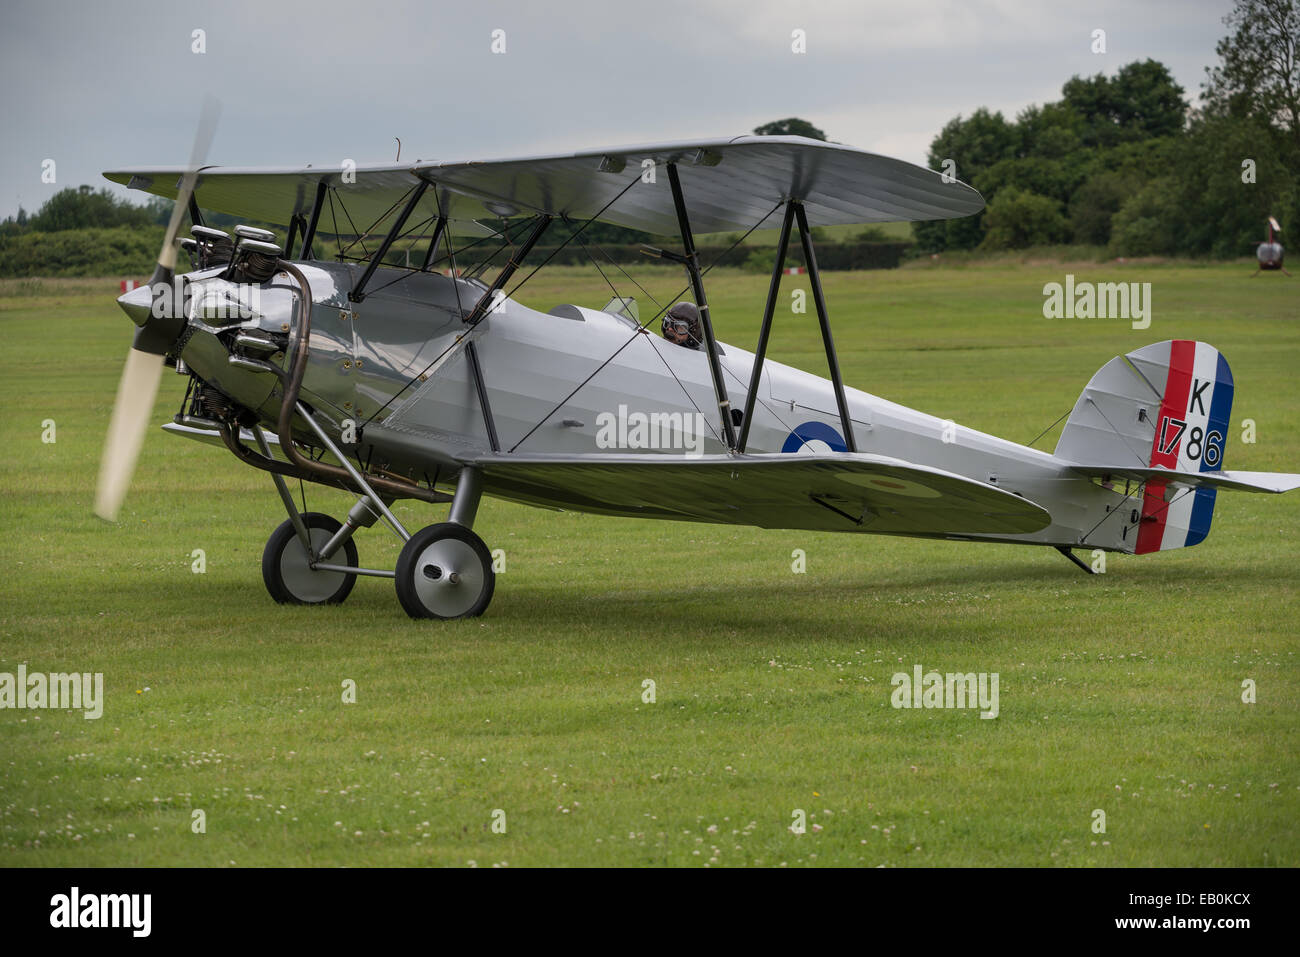 Biggleswade, UK - 29 June 2014: A vintage  Hawker Tomtit bi-plane on display at the Shuttleworth Collection air - Stock Image